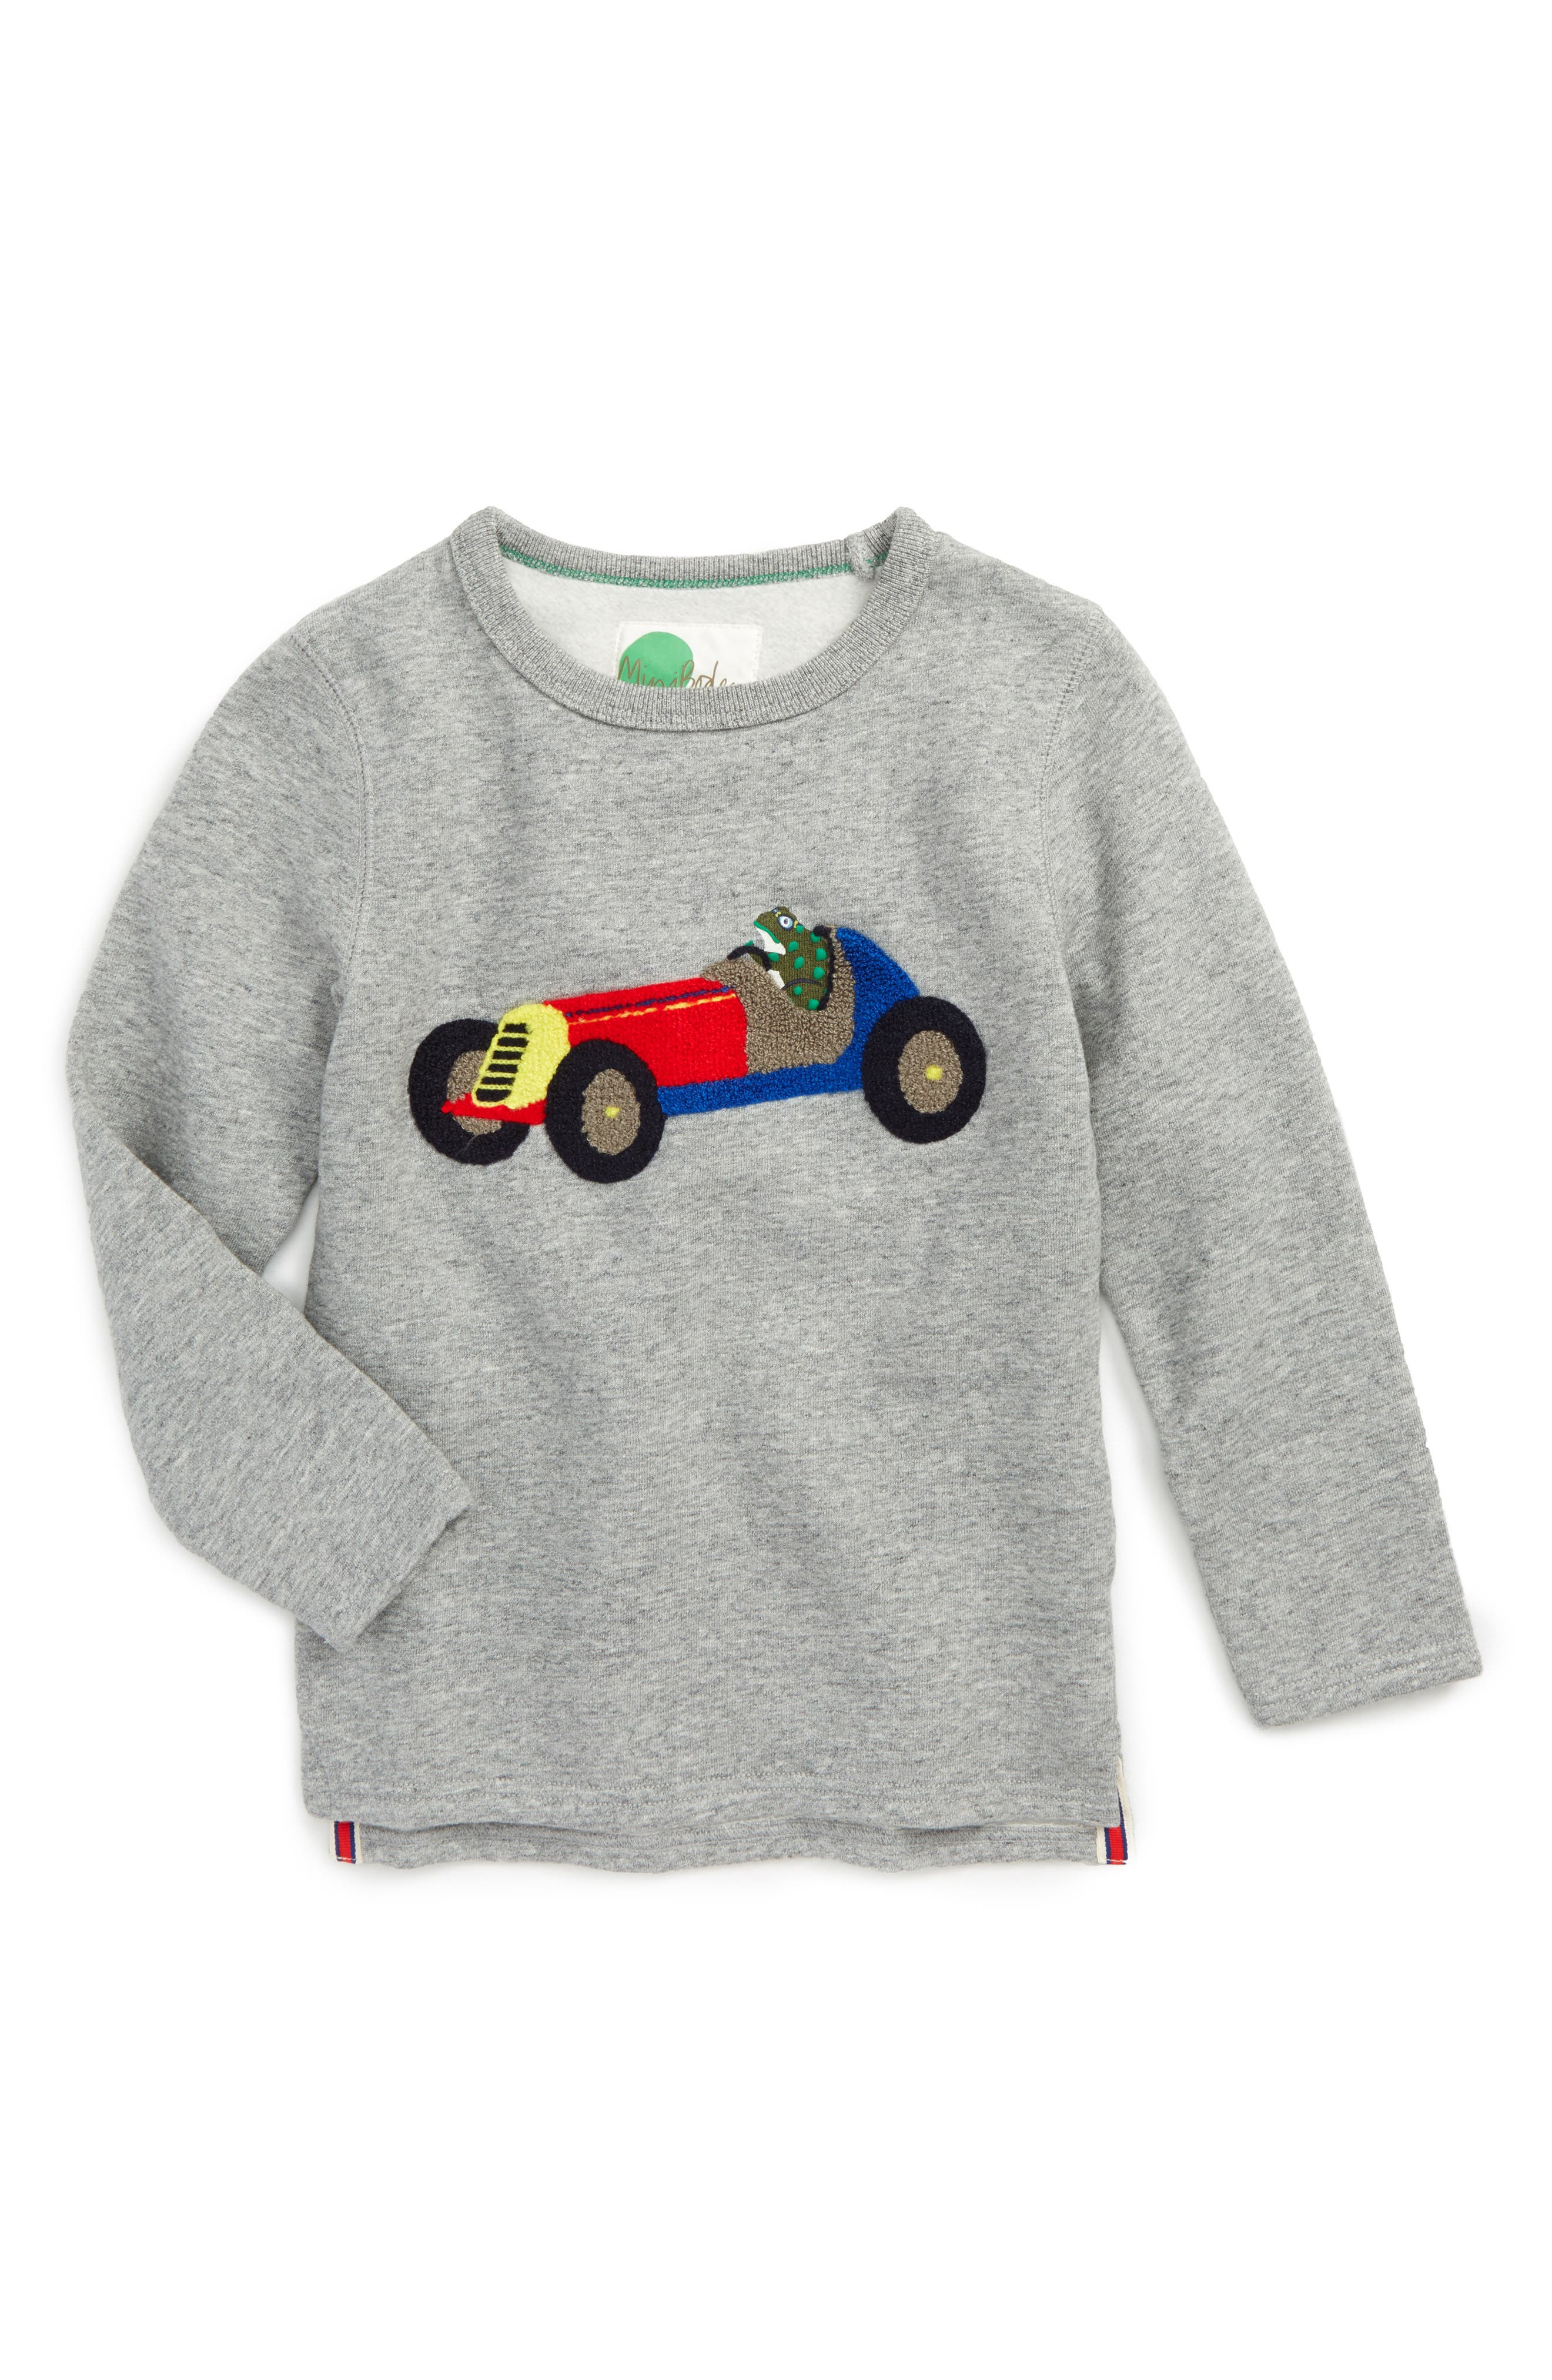 Mini Boden Open Road Sweatshirt (Toddler Boys, Little Boys & Big Boys)